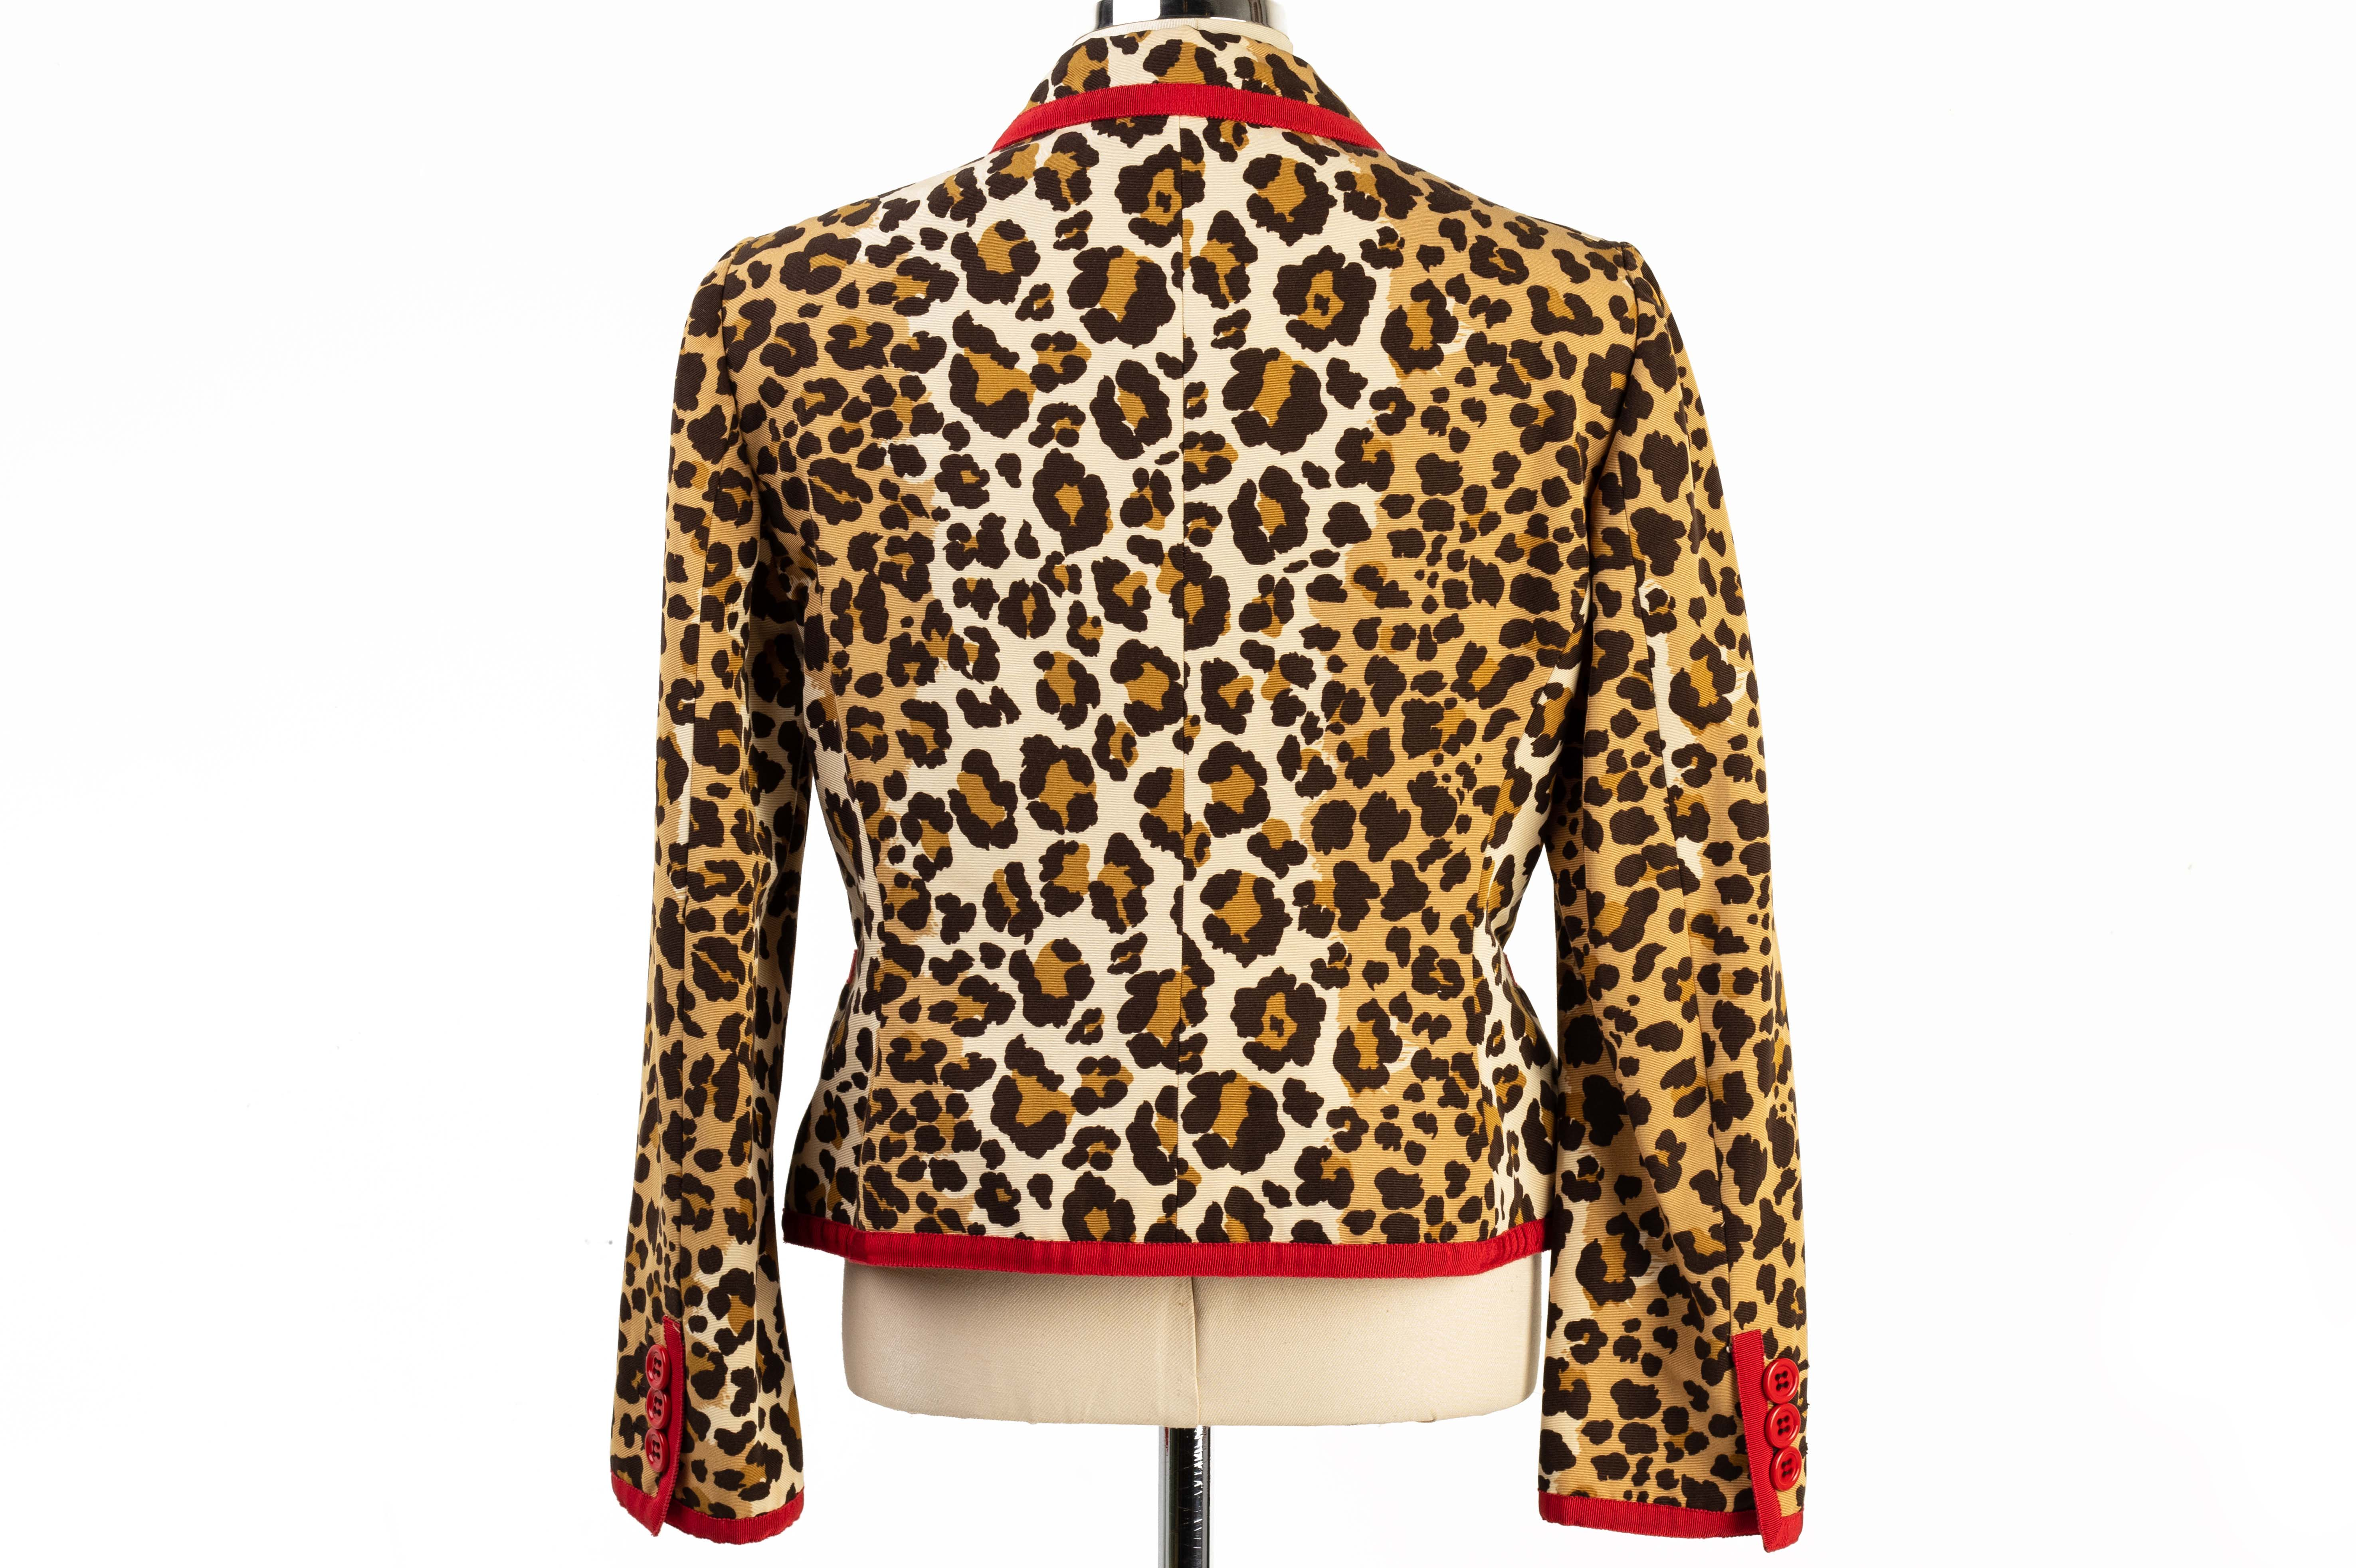 A MOSCHINO 'CHEAP & CHIC' LEOPARD PRINT JACKET - Image 3 of 3